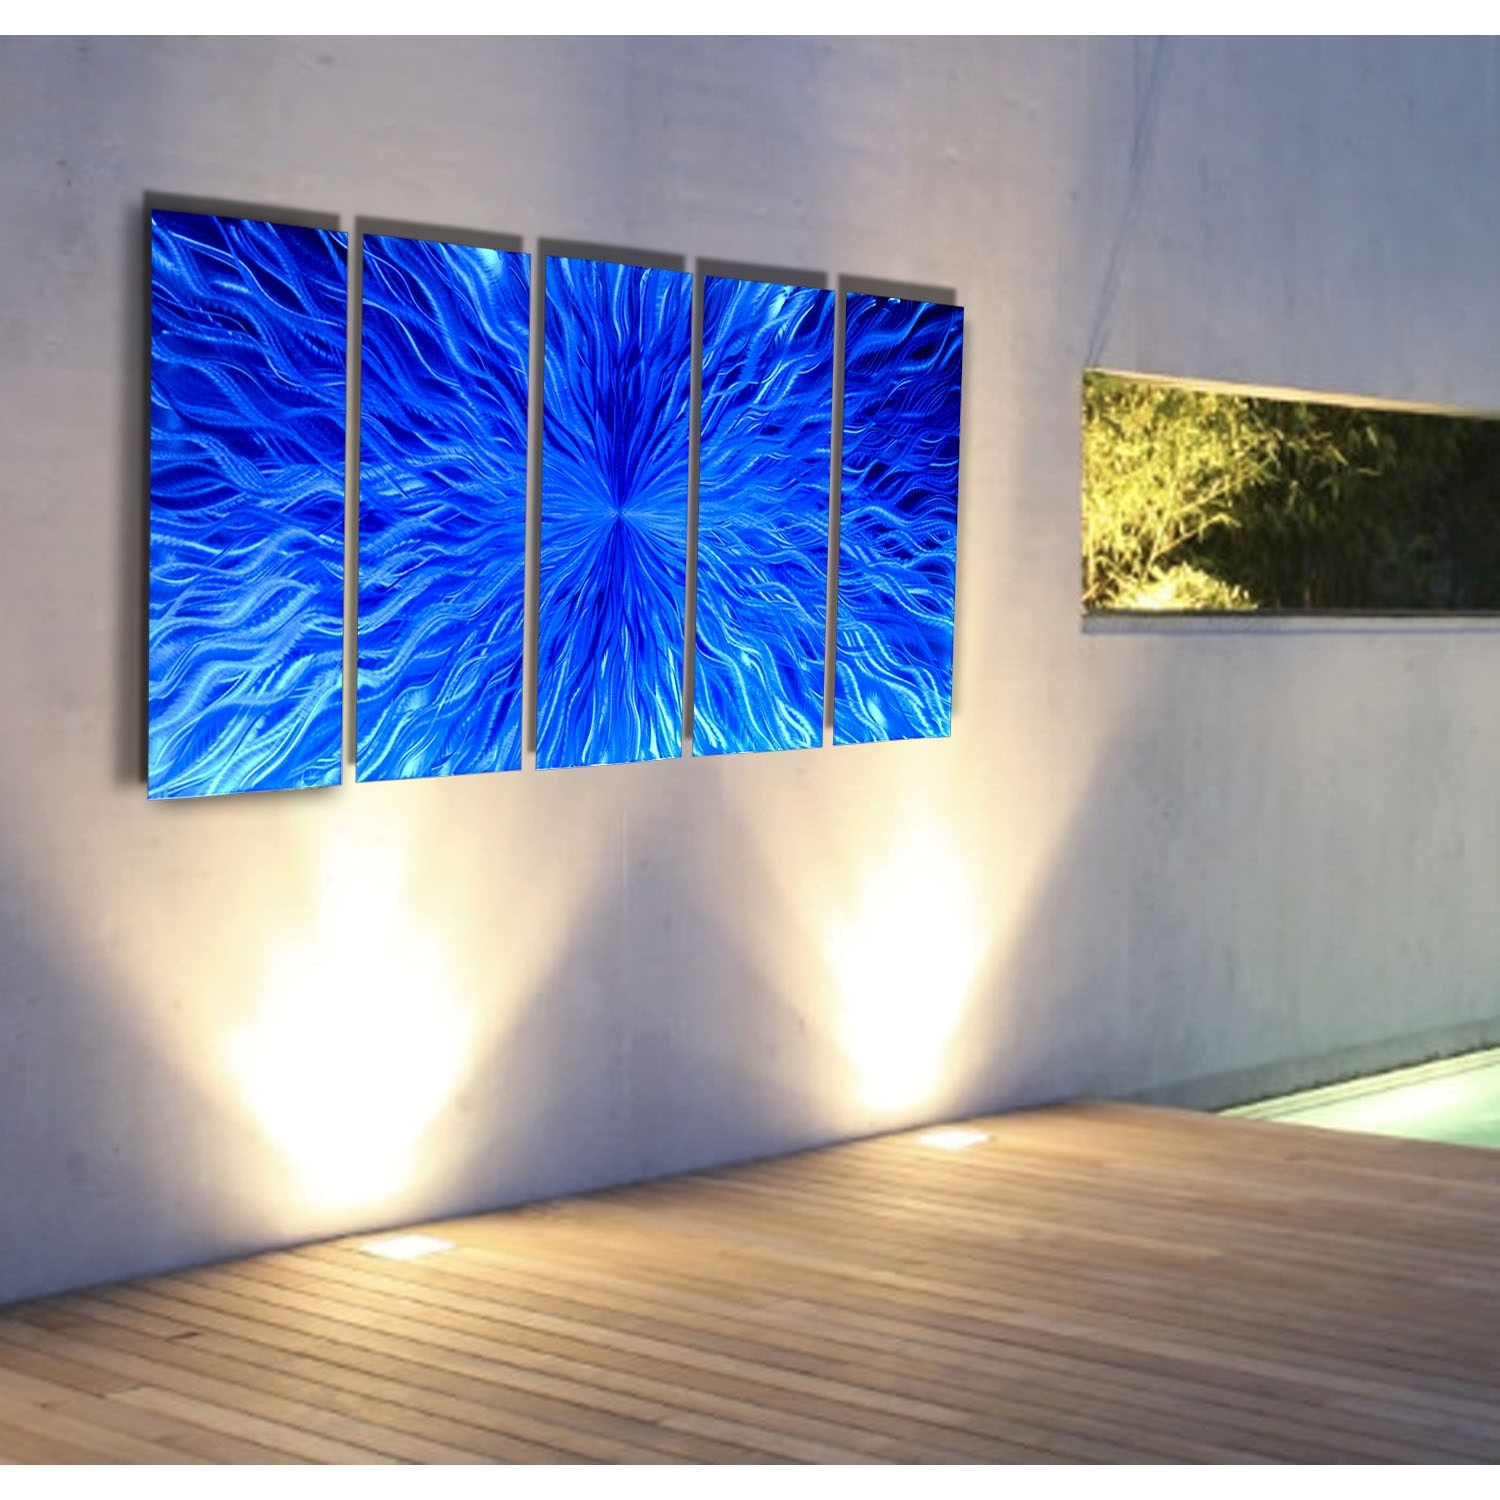 Vitality In Blue – Blue Metal Wall Art – 5 Panel Wall Décorjon Pertaining To Recent Panel Wall Art (View 20 of 20)